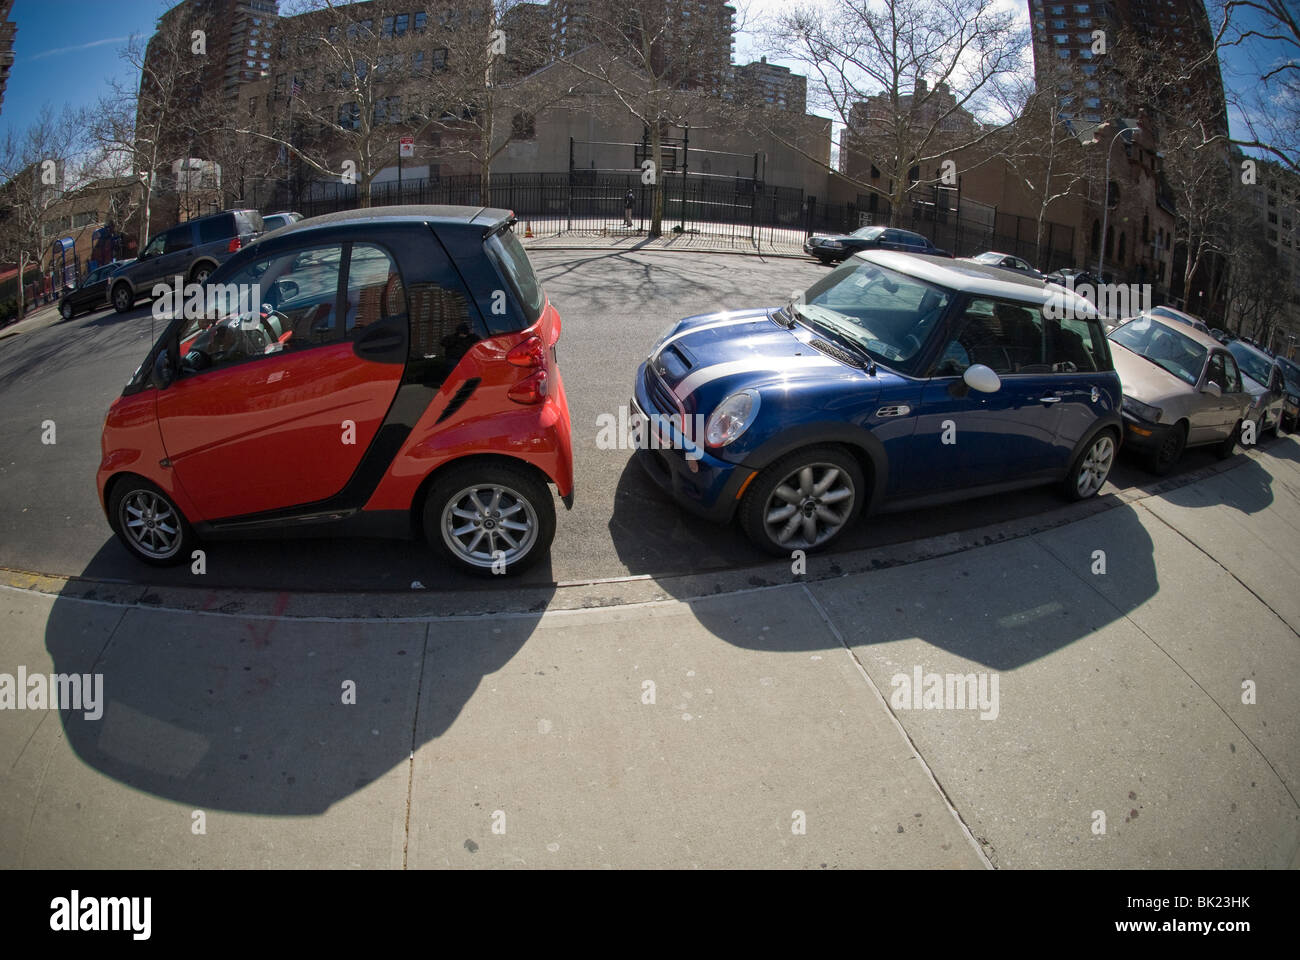 A two-seat Smart car, left, manufactured by Daimler and a Mini ...